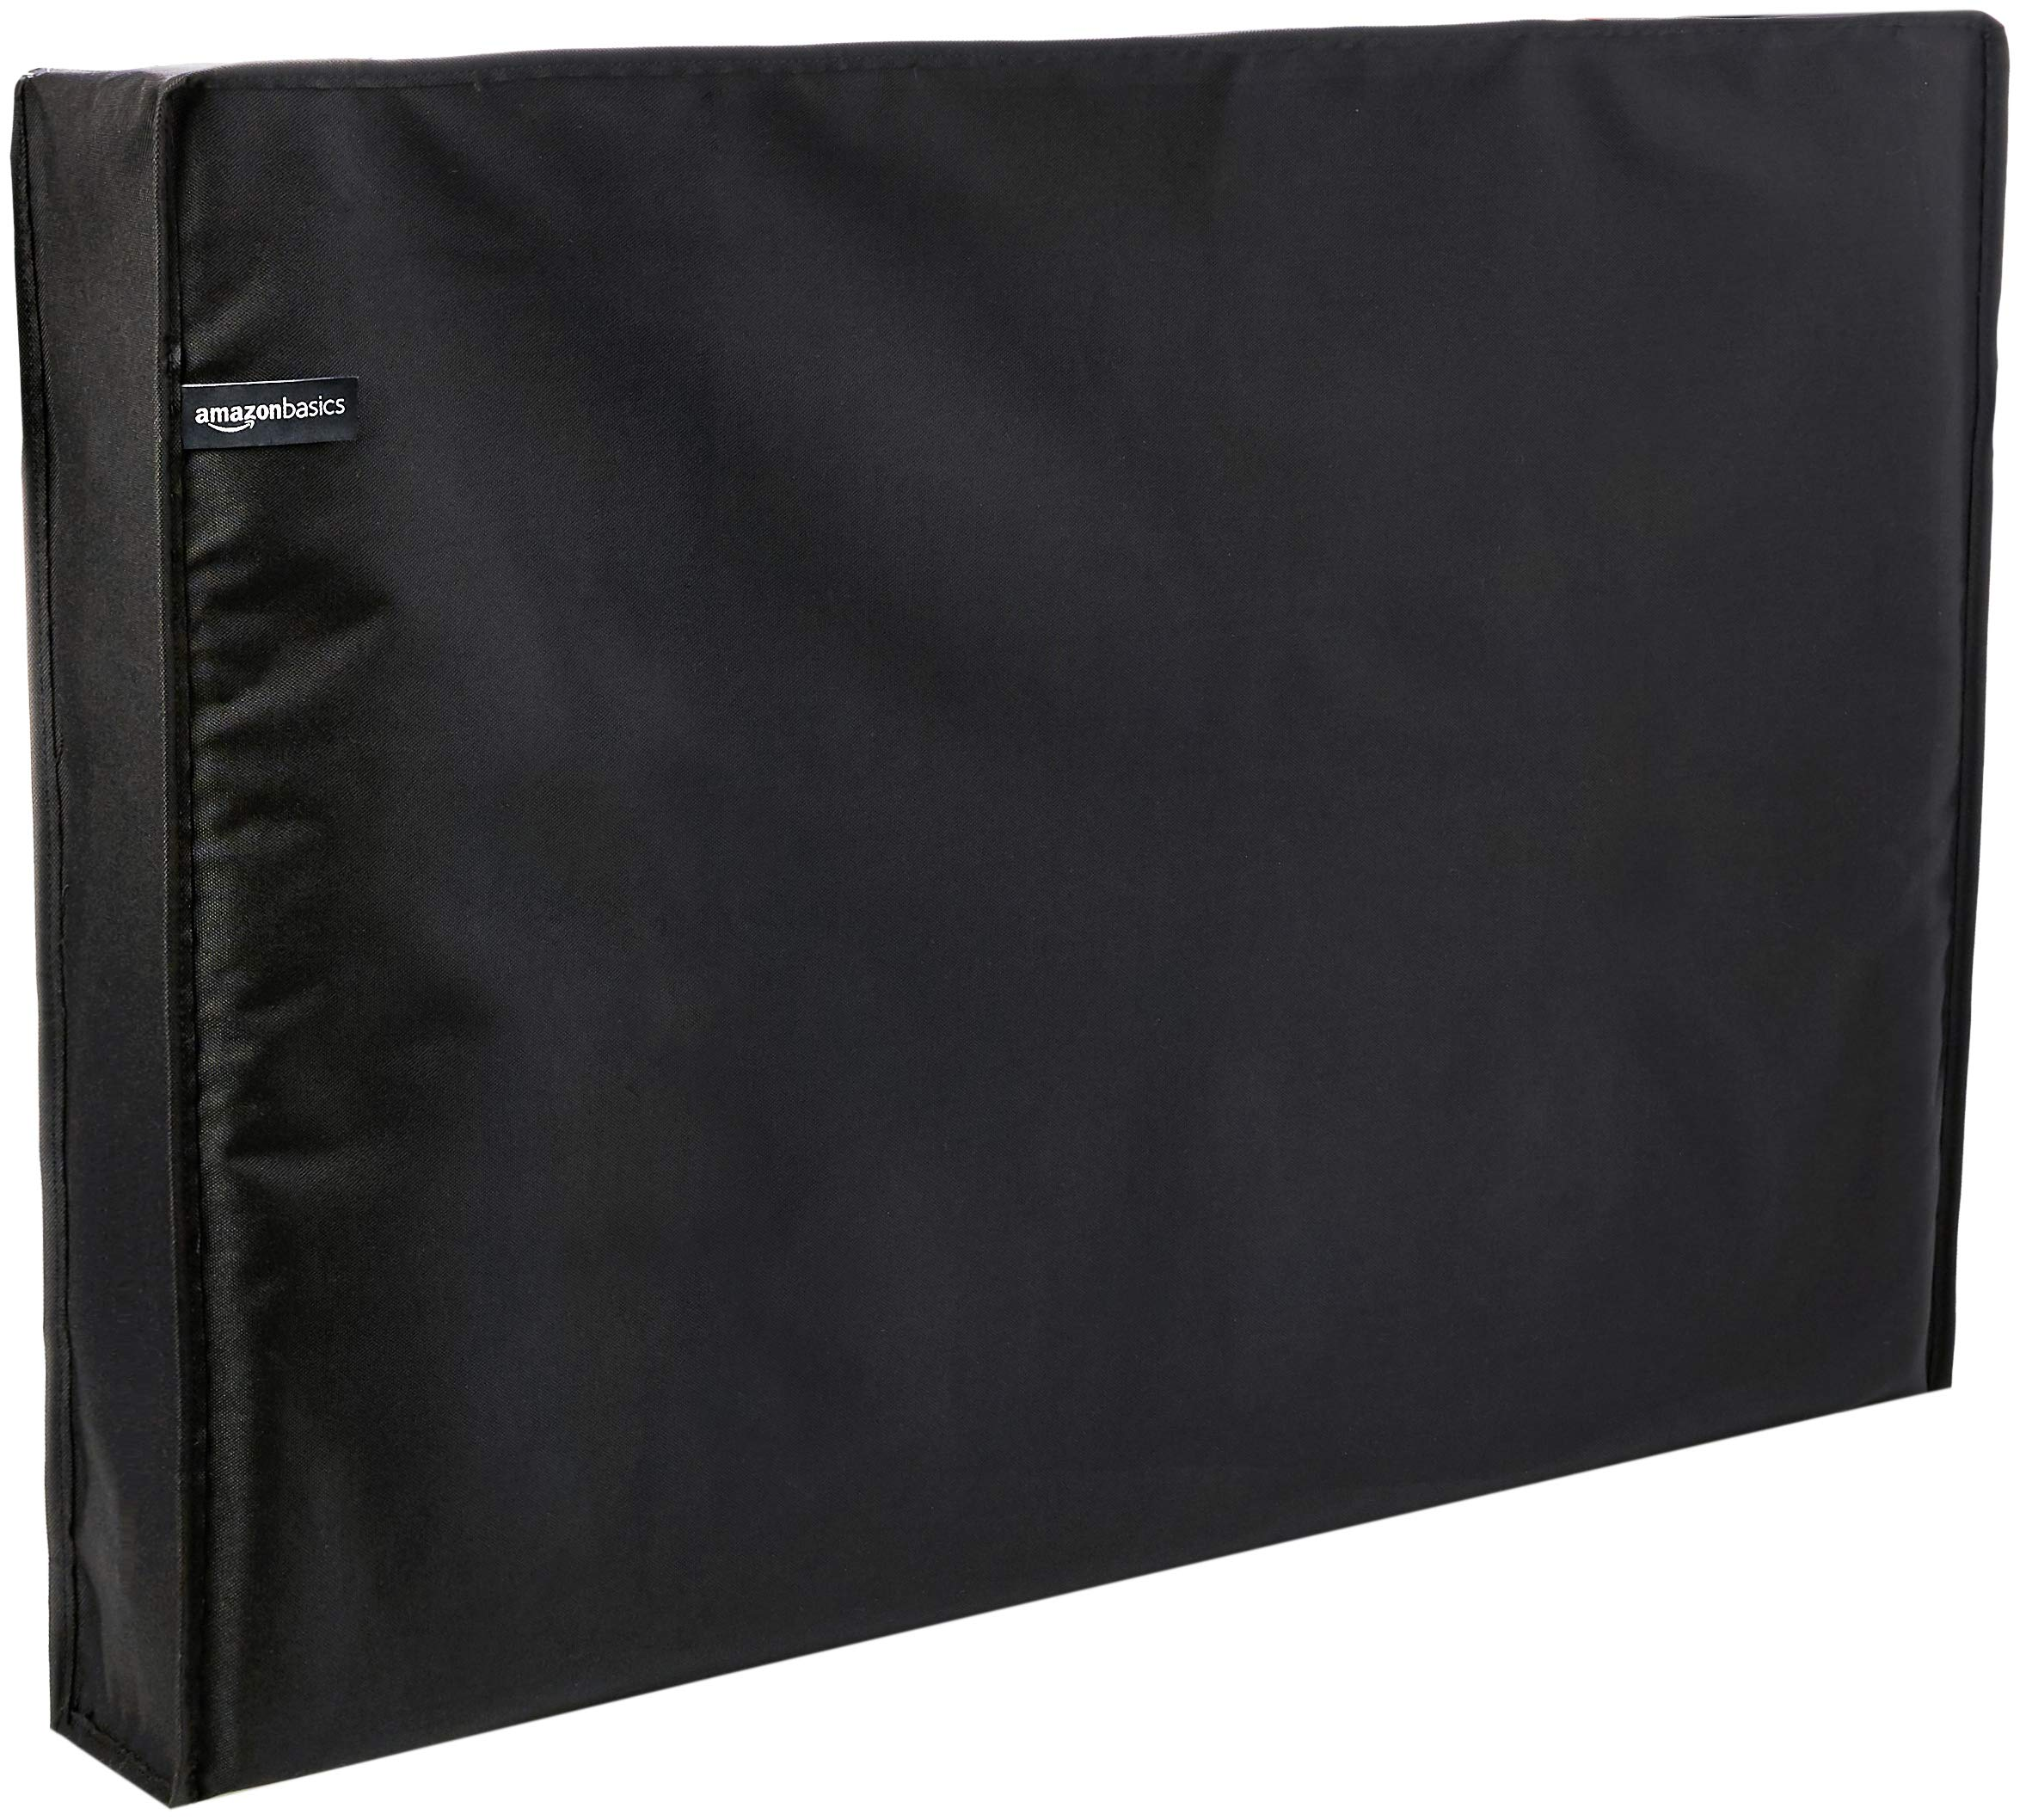 AmazonBasics Outdoor Waterproof and Weatherproof TV Cover - 30 to 32 inches by AmazonBasics